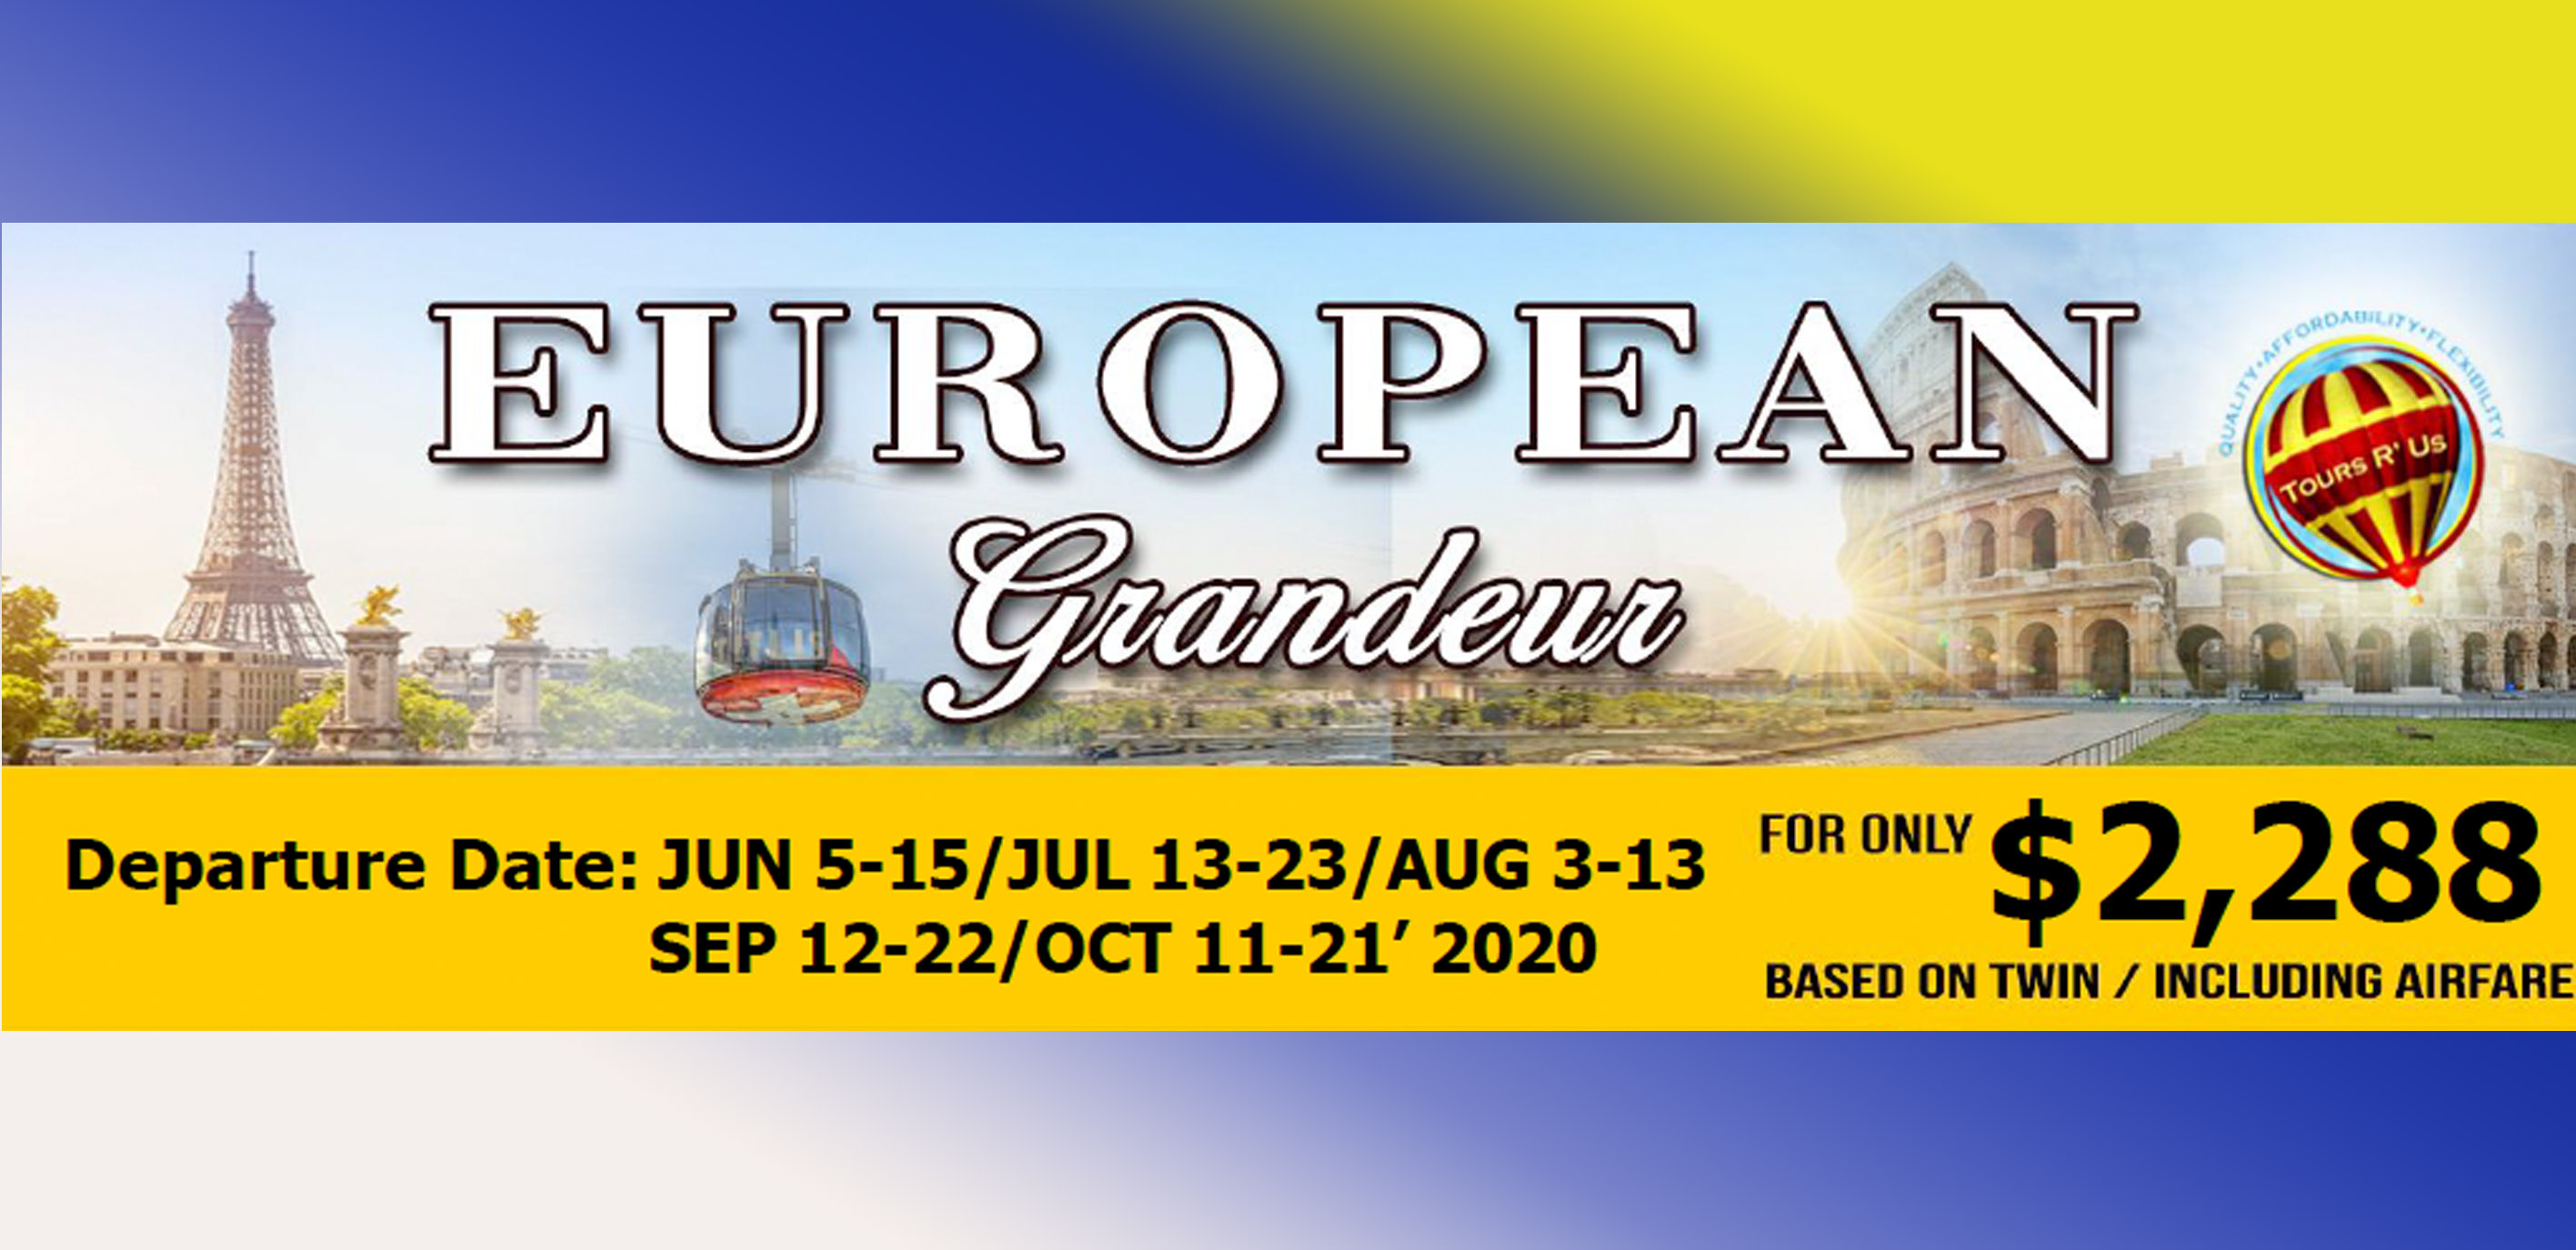 EUROPEAN GRANDEUR JUN-OCT DEPARTURES Featured Images 2020 February Packages